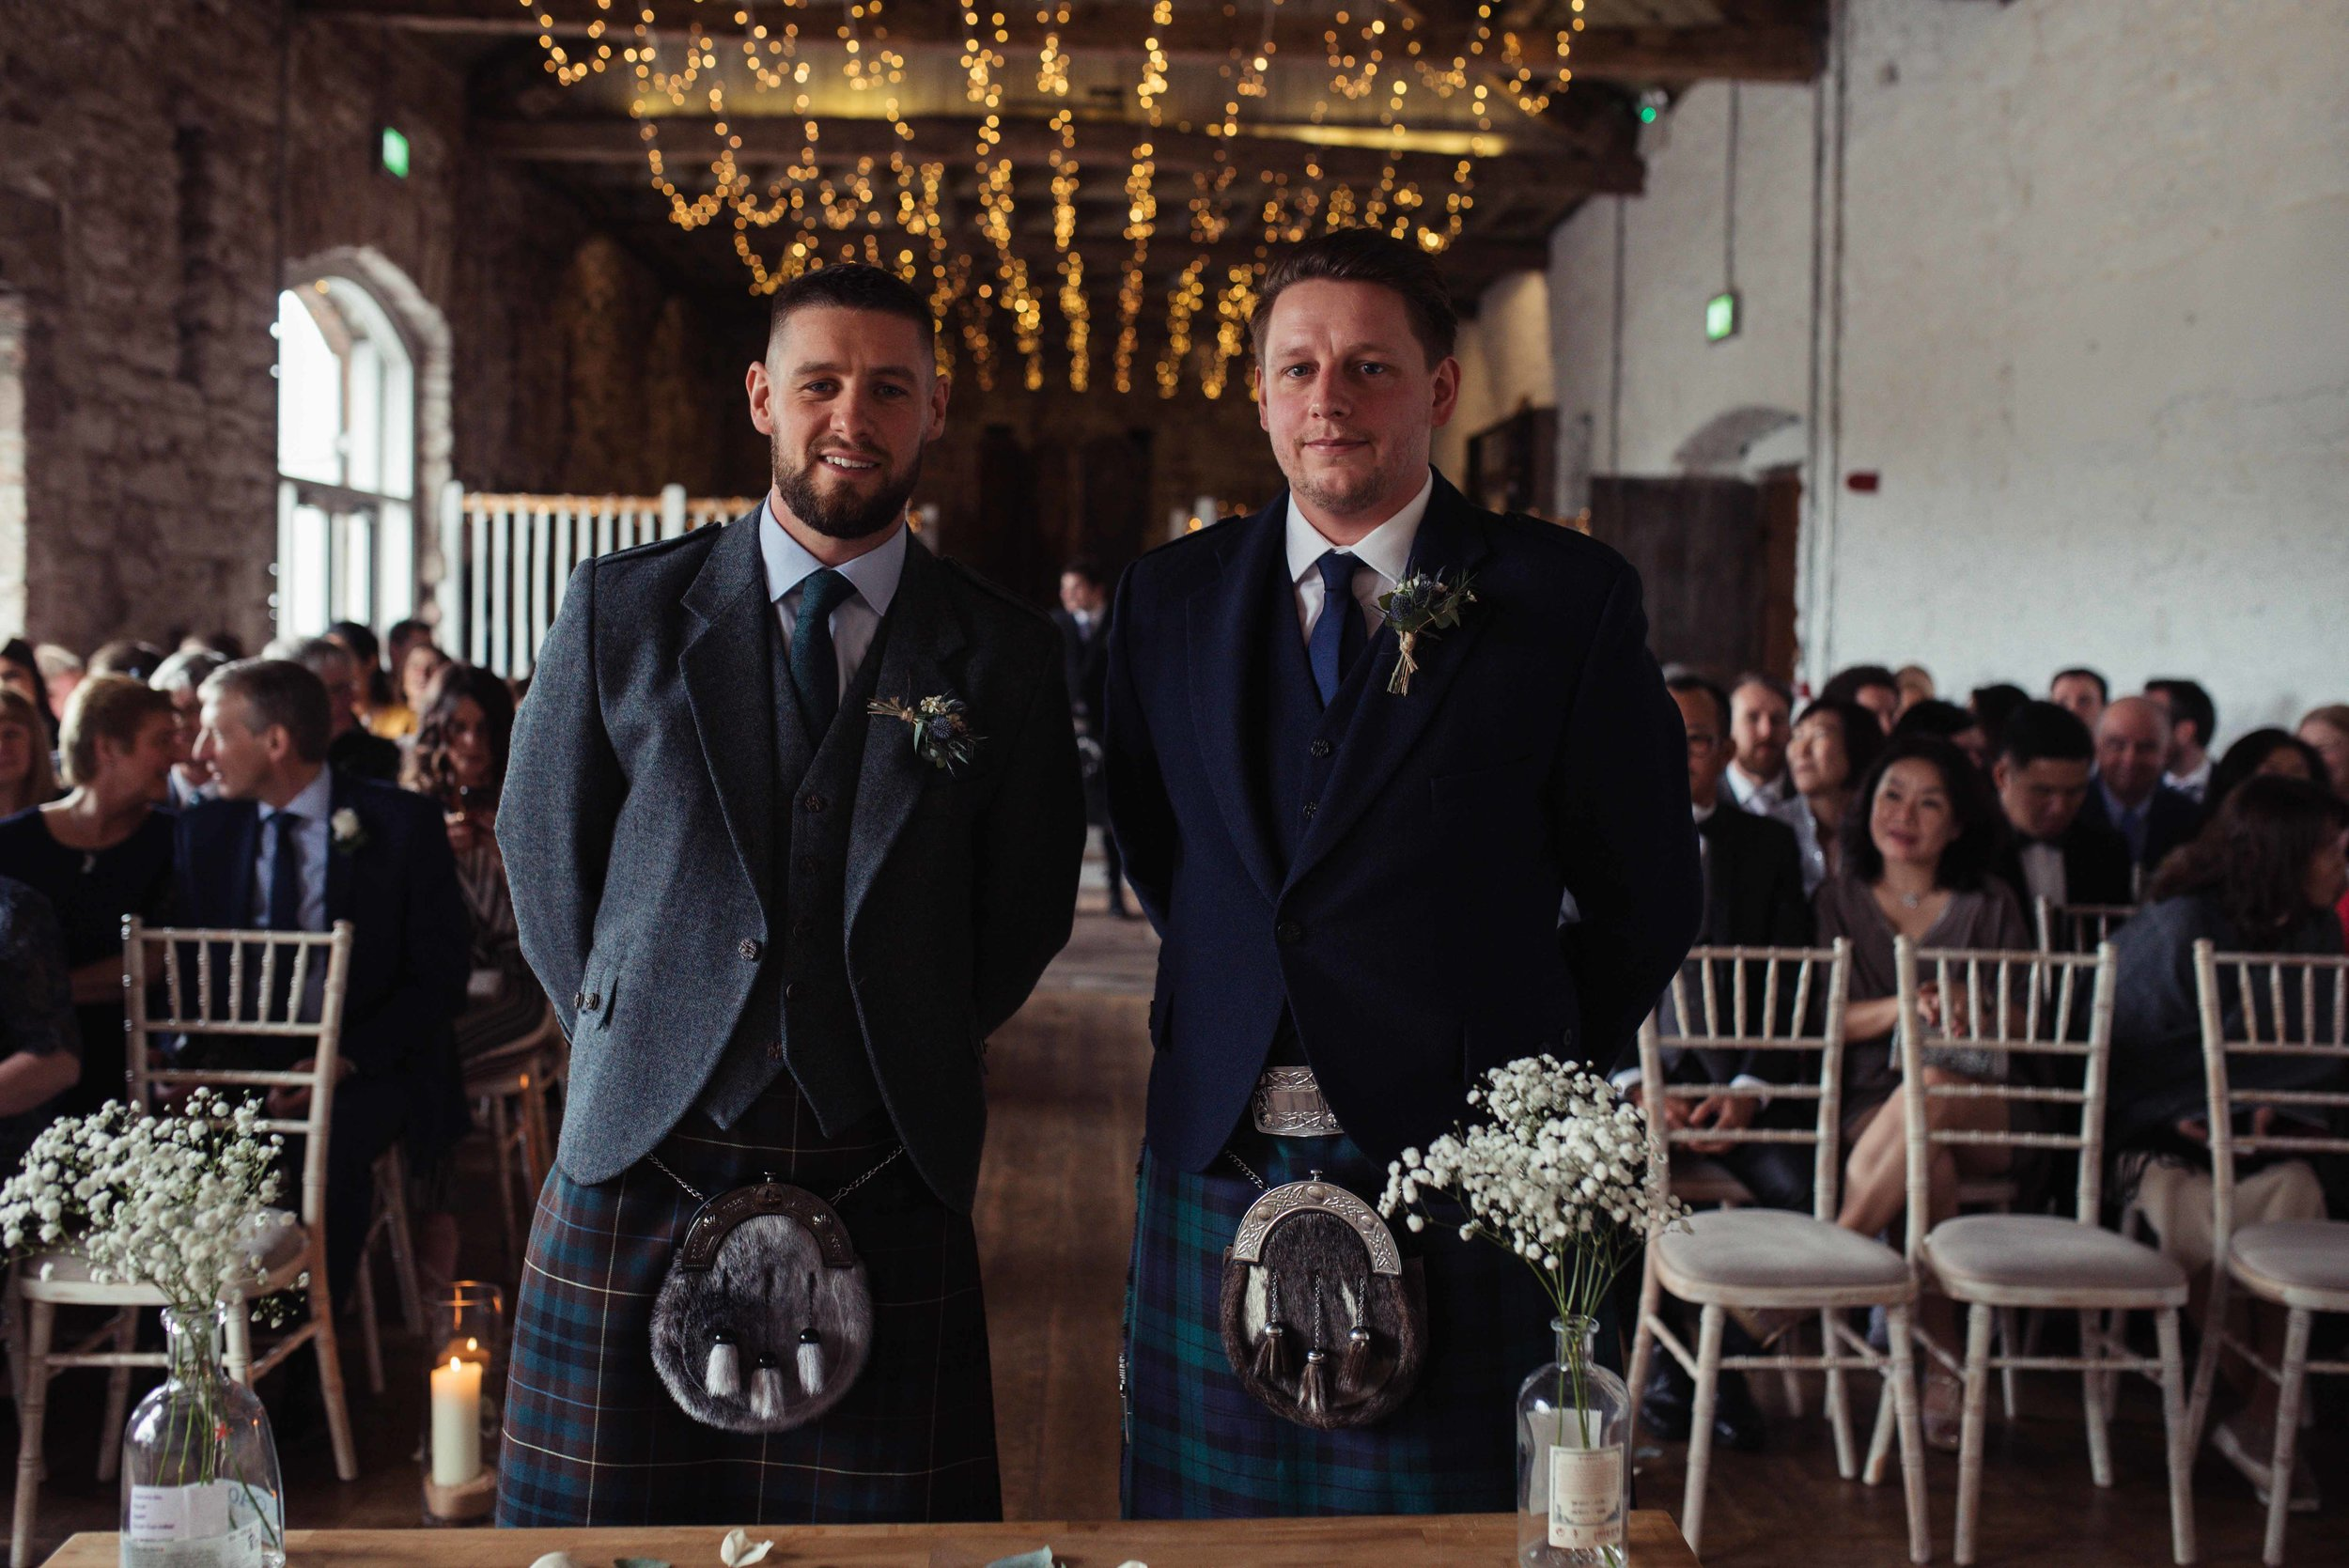 The groom and his best man stand ready and waiting for the bride to make her entrance